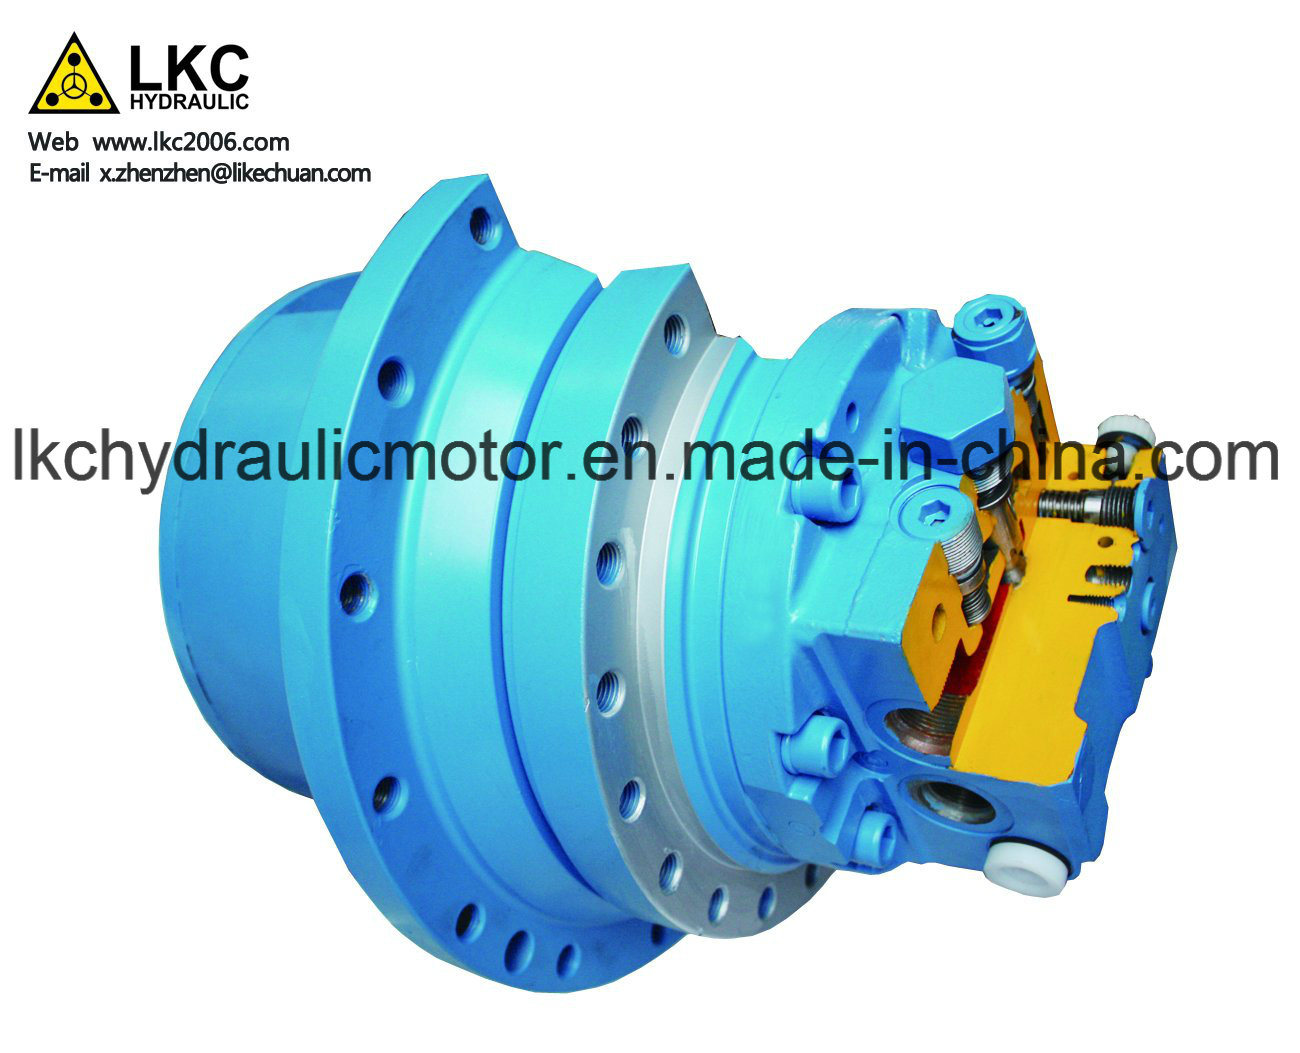 Excavator Axial Piston Motor Spare Parts for 2.5t~3.5t Crawler Machinery